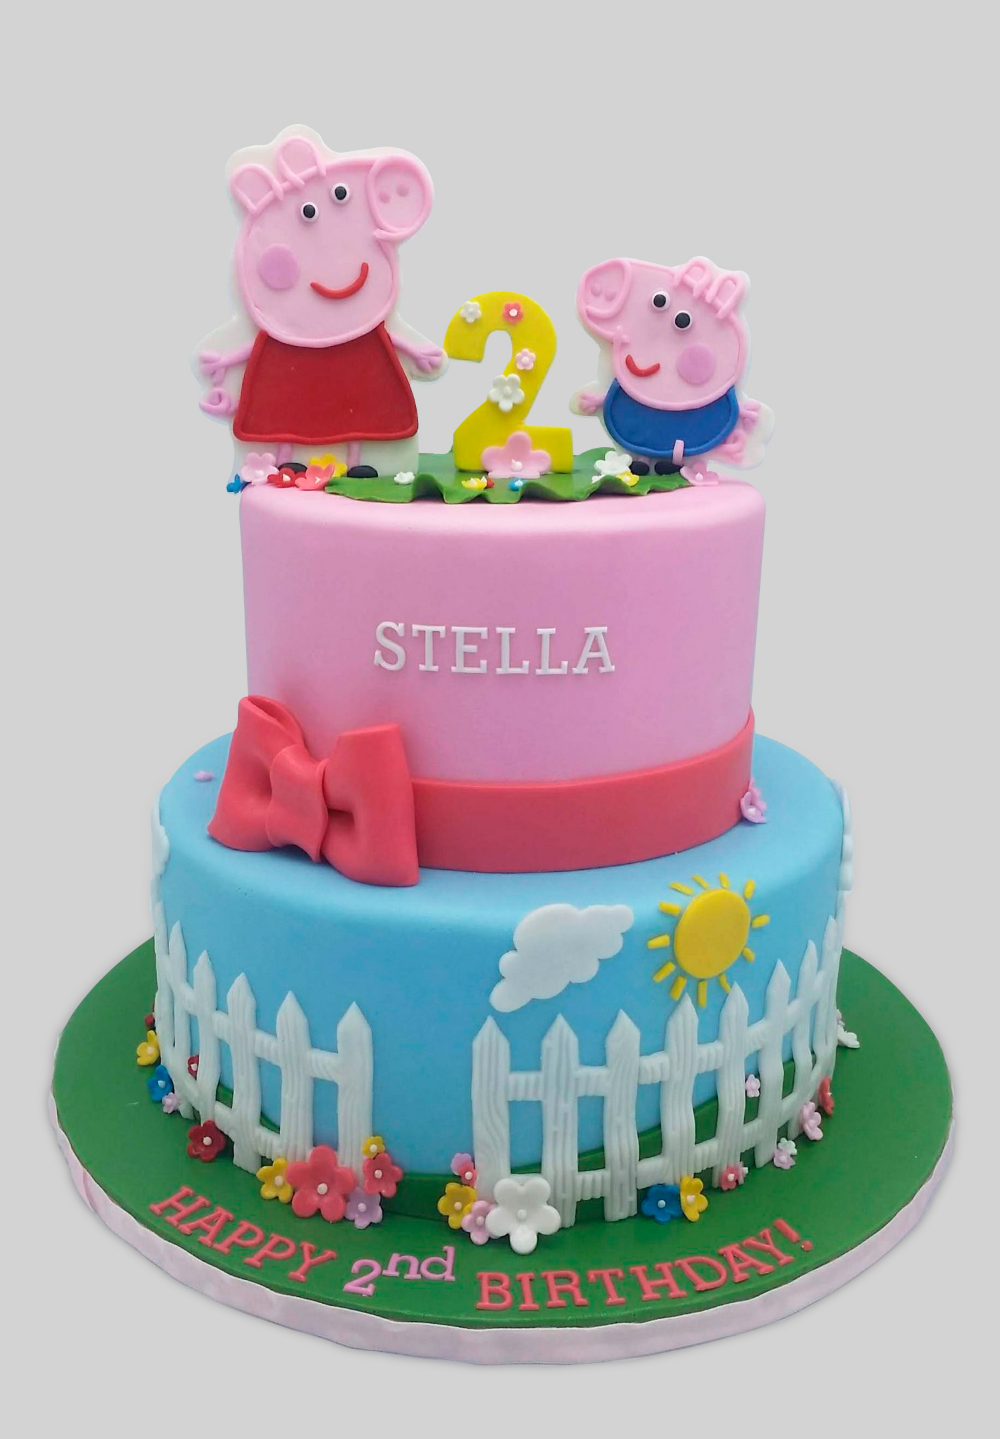 Phenomenal Peppa Pig Confections By The Sea Peppapig With Images Pig Funny Birthday Cards Online Hendilapandamsfinfo